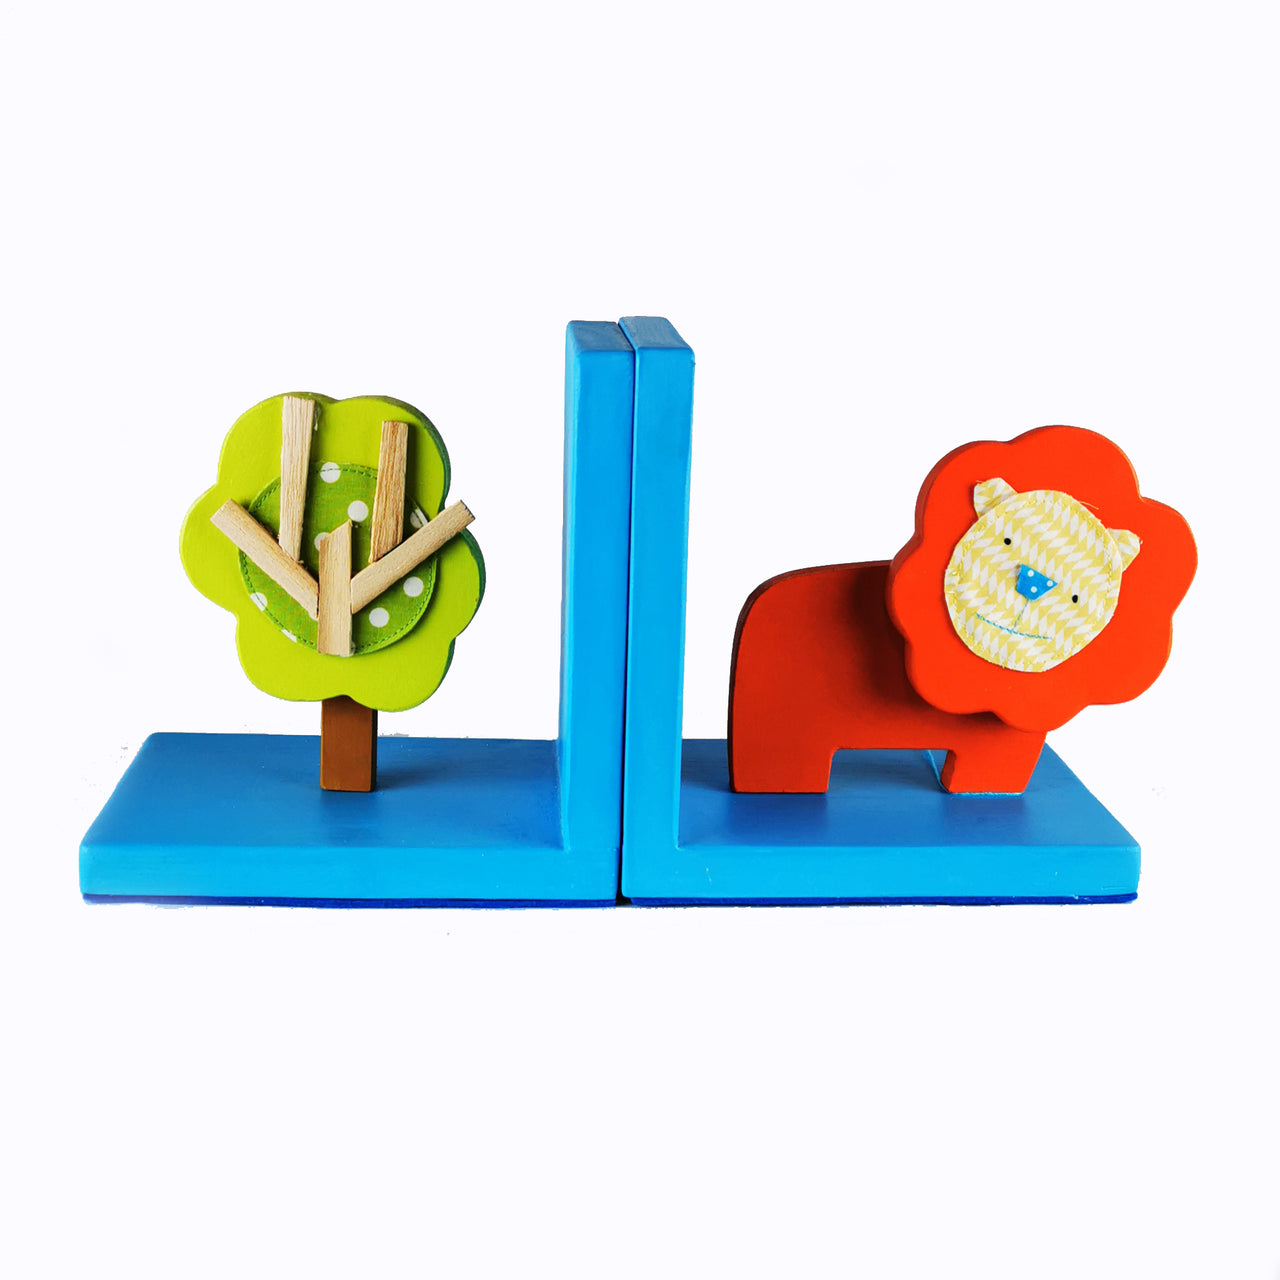 Designed & hand-crafted in Italy, these bookends with a with a blue wooden base and a orange lion design will bring colour and imagination to your child's bedroom.